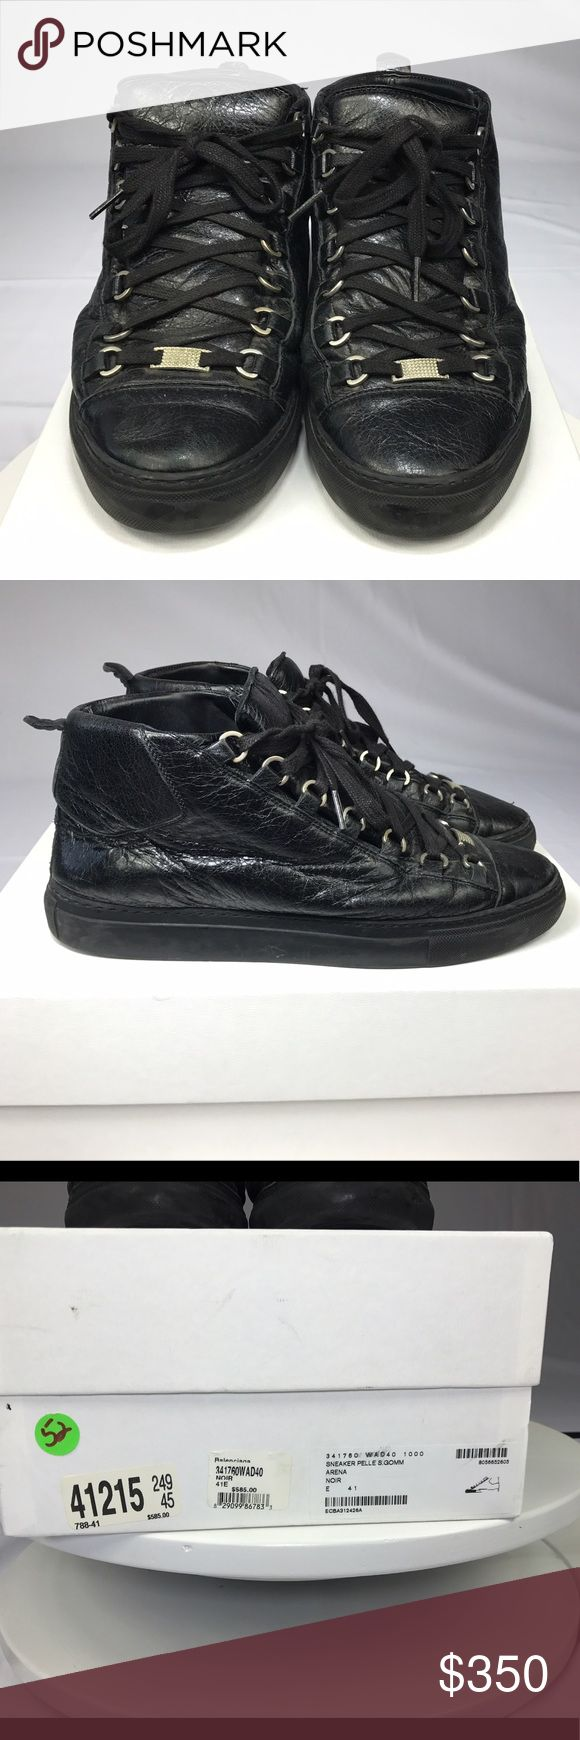 Balenciaga Arena Sneakers (Black) Size 41 Black Balenciaga Arena Sneakers. Size 41. My US men's shoe size is 9. These shoes are used but still in great shape! Balenciaga Shoes Sneakers